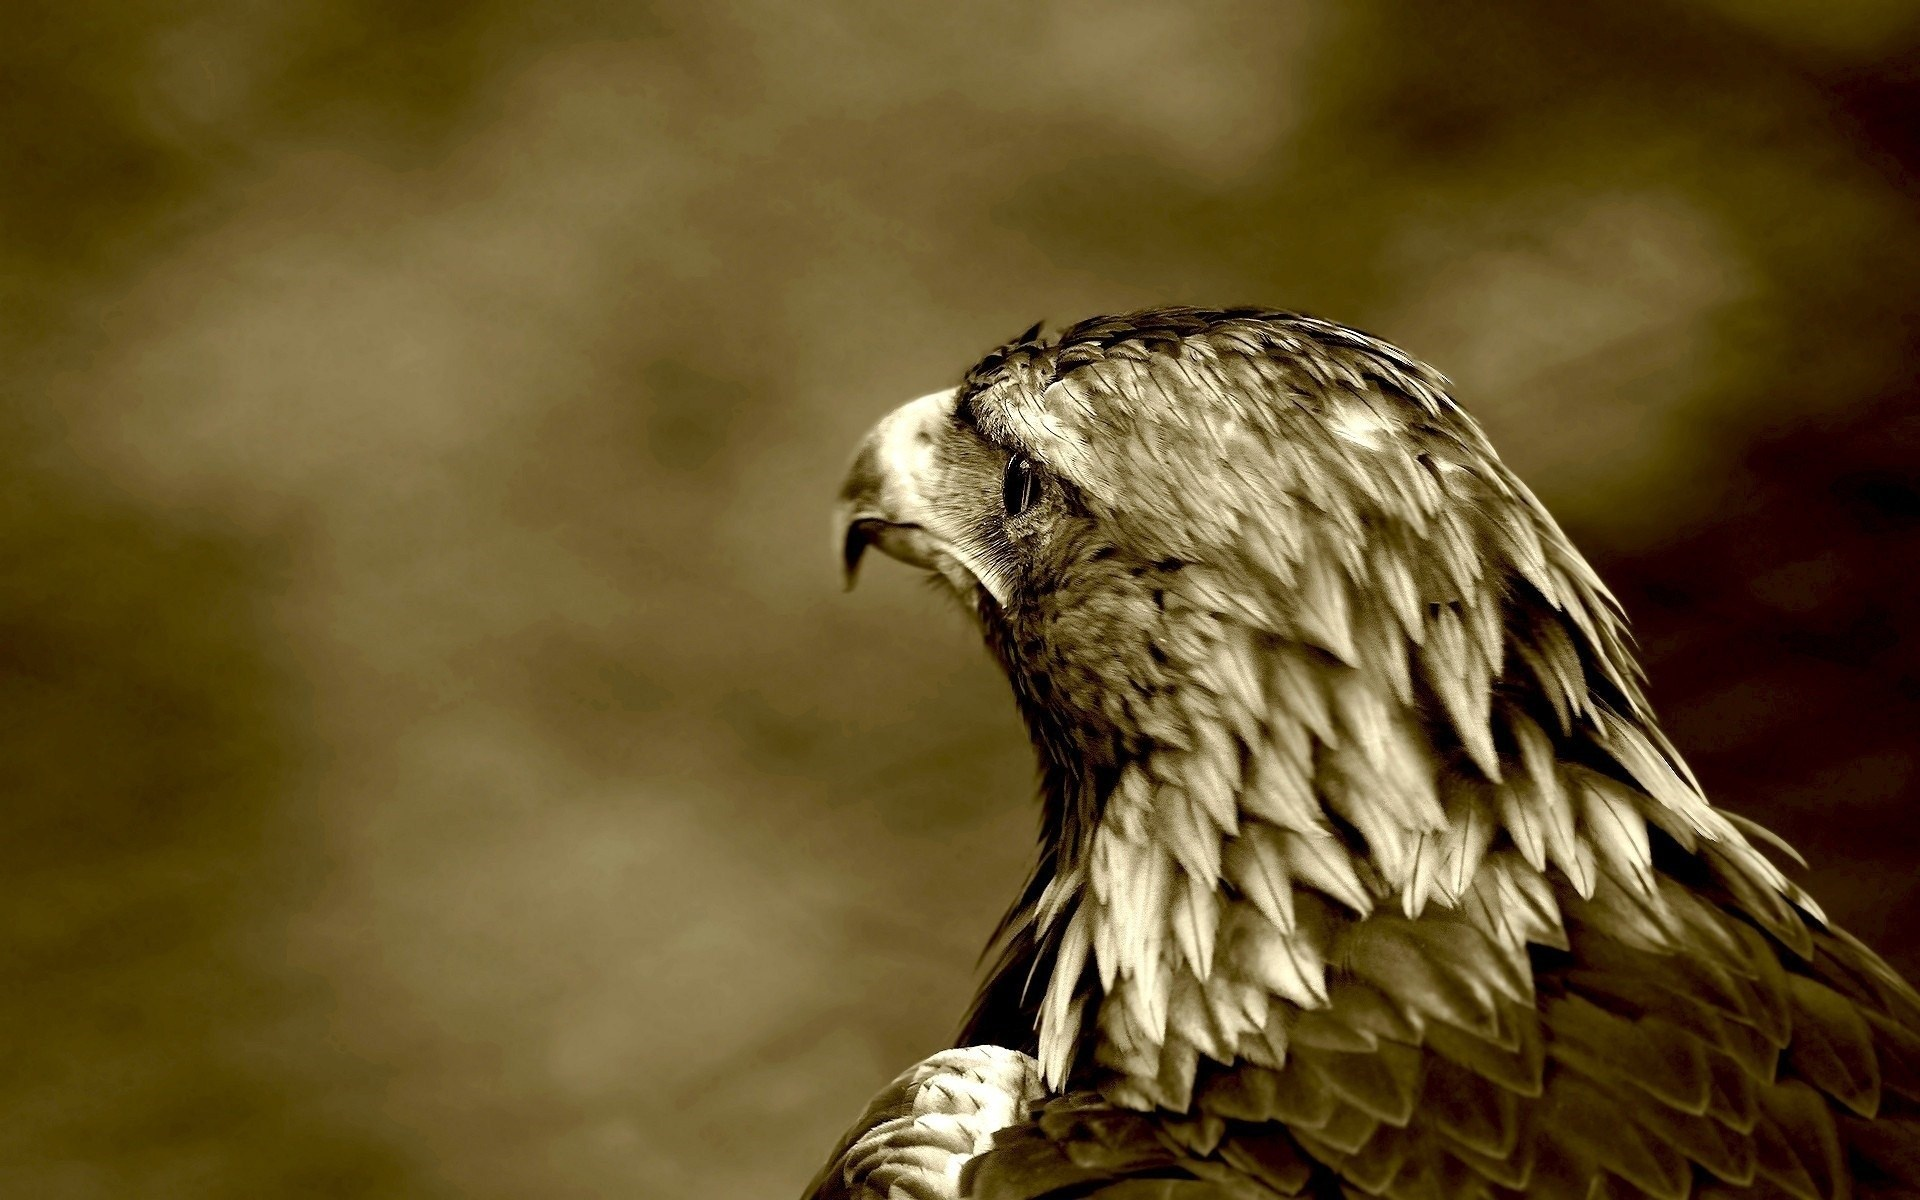 eagle wallpaper hd 1366x768